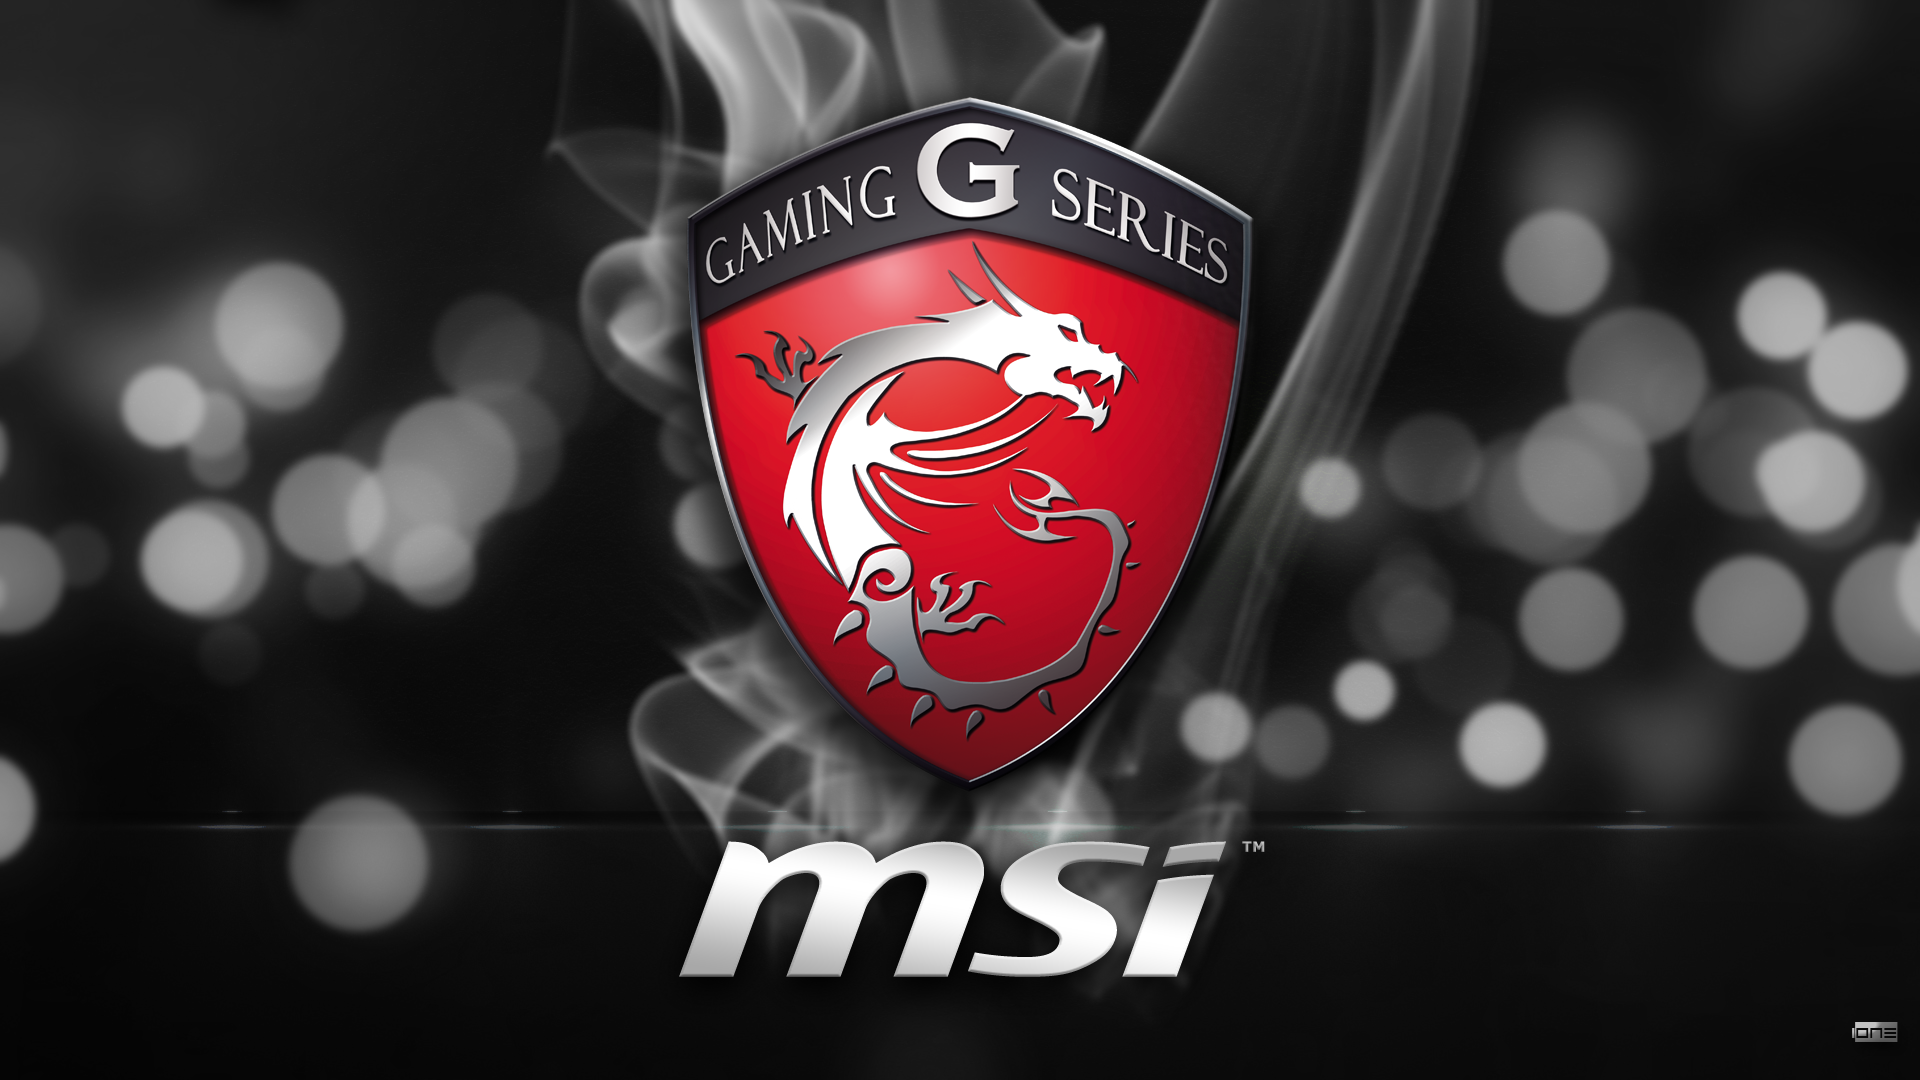 Msi Gaming Desktop Wallpaper Wallpapersafari